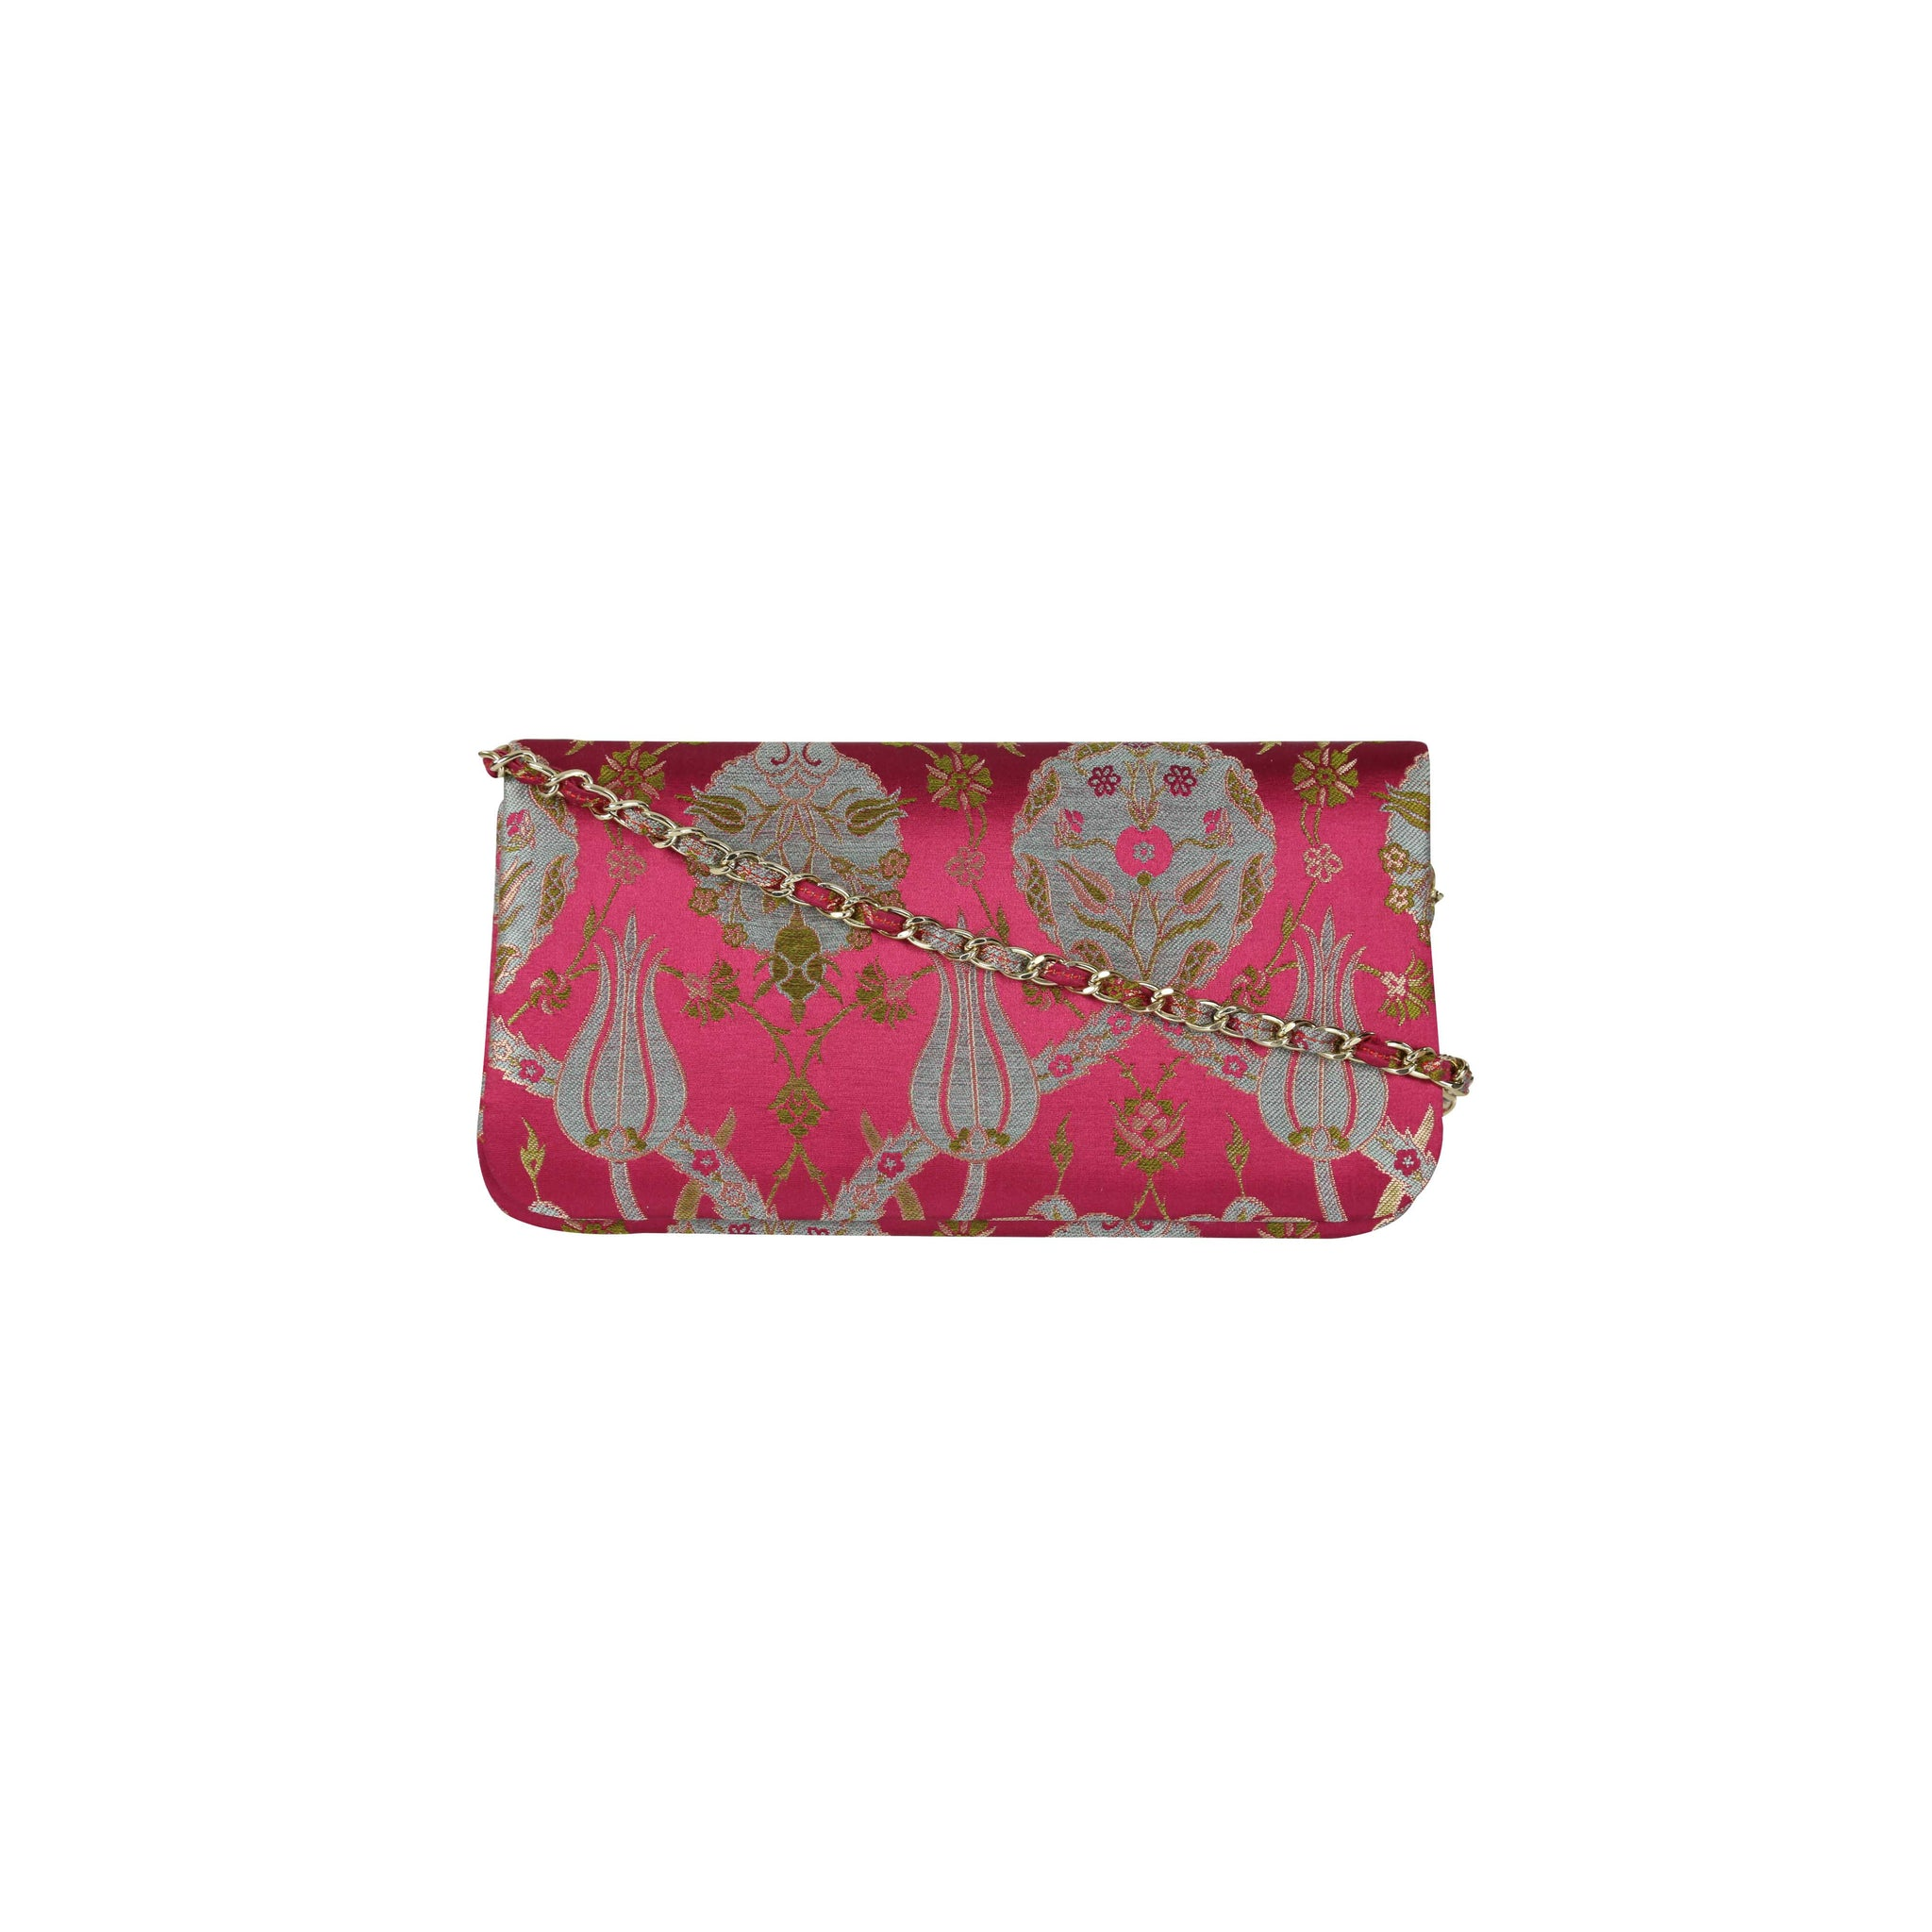 ottoman silks Bosphorus clutch purse in amina fabric